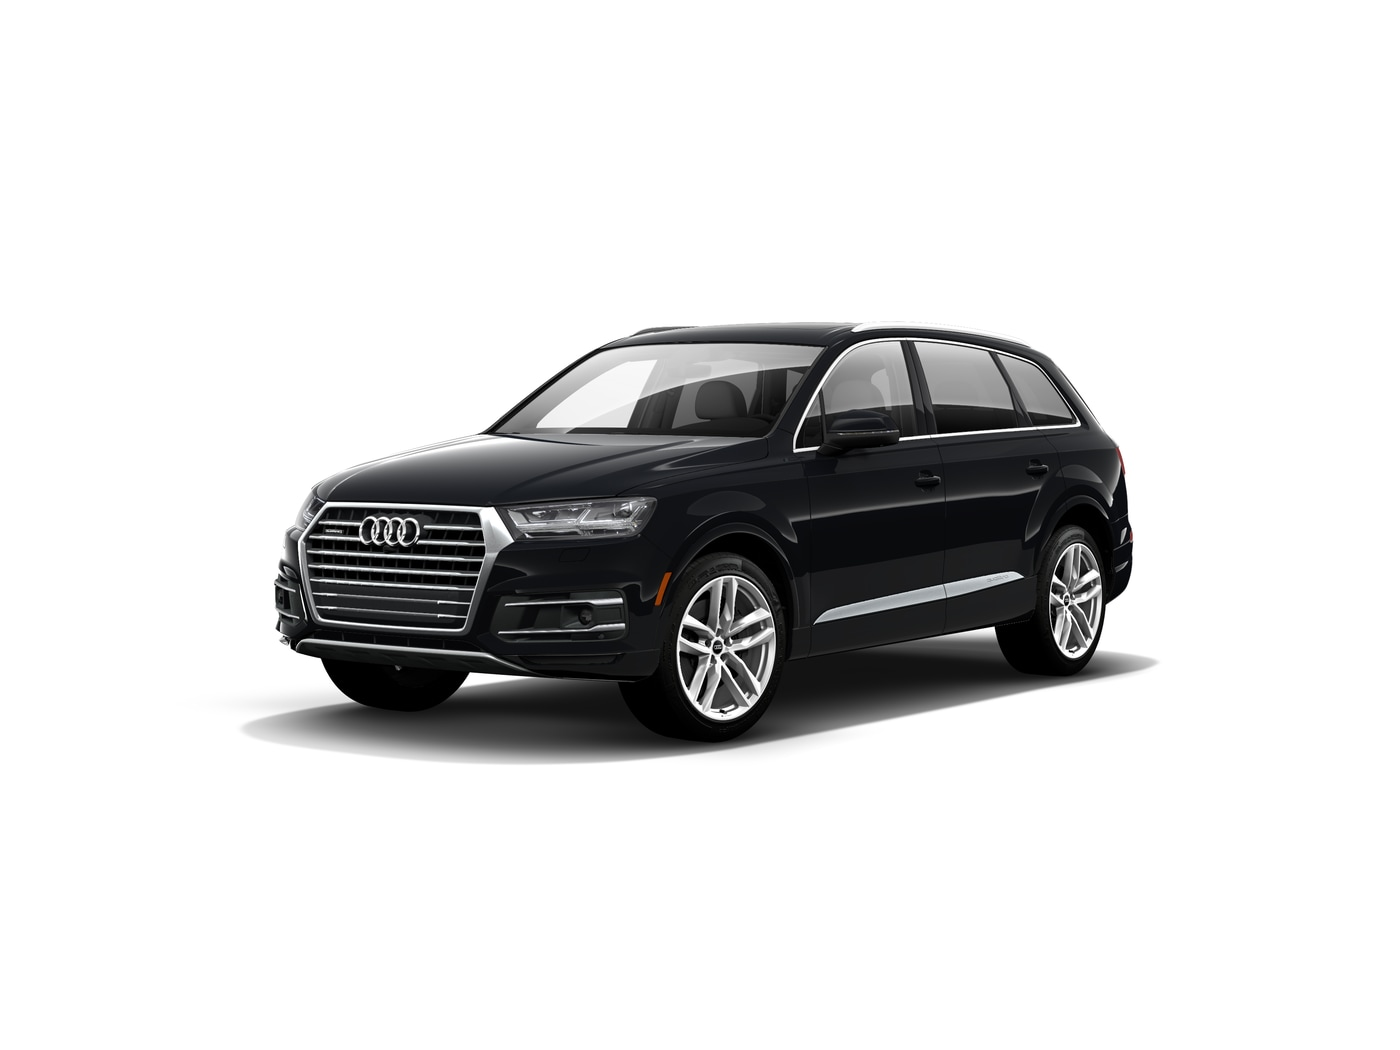 New 2018 Audi Q7 For Sale San Rafael Ca Serving Headlight Wiring Harness Francisco Marin County Areas Stock A9679